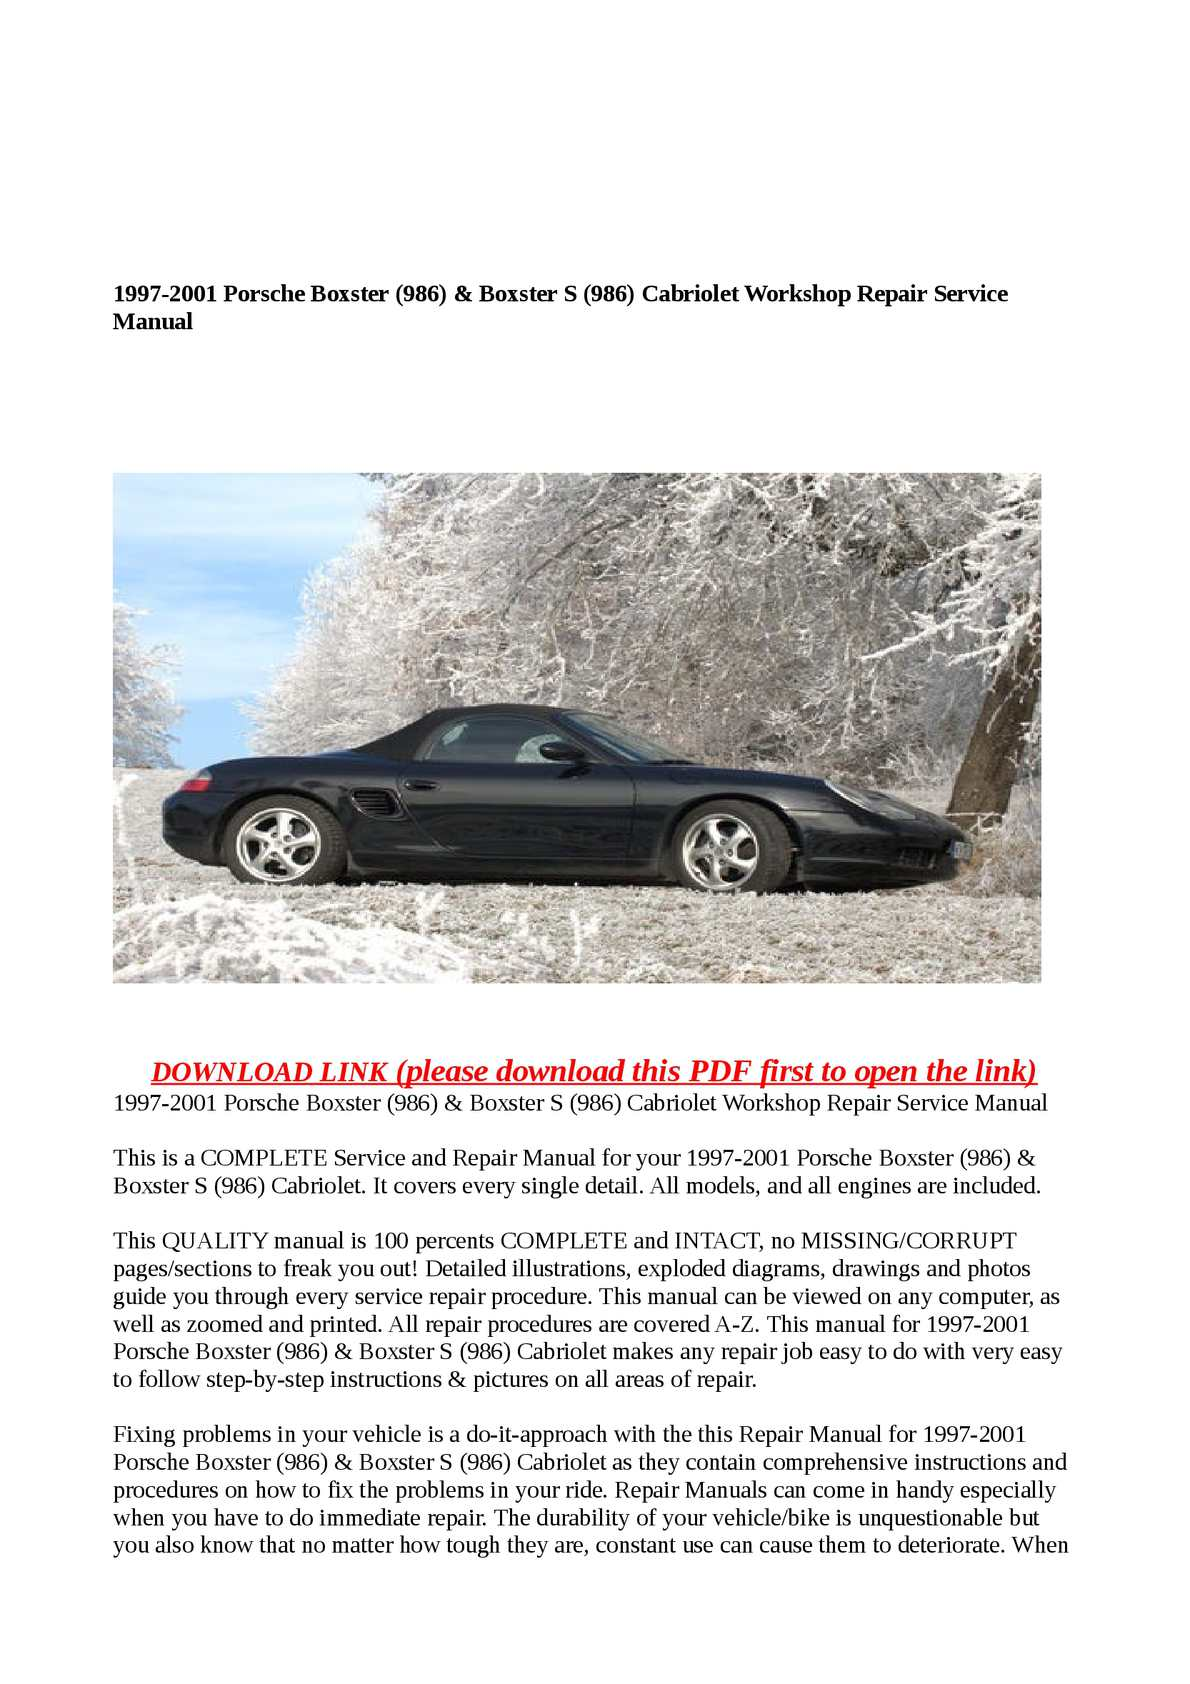 Calaméo - 1997-2001 Porsche Boxster (986) & Boxster S (986) Cabriolet  Workshop Repair Service Manual